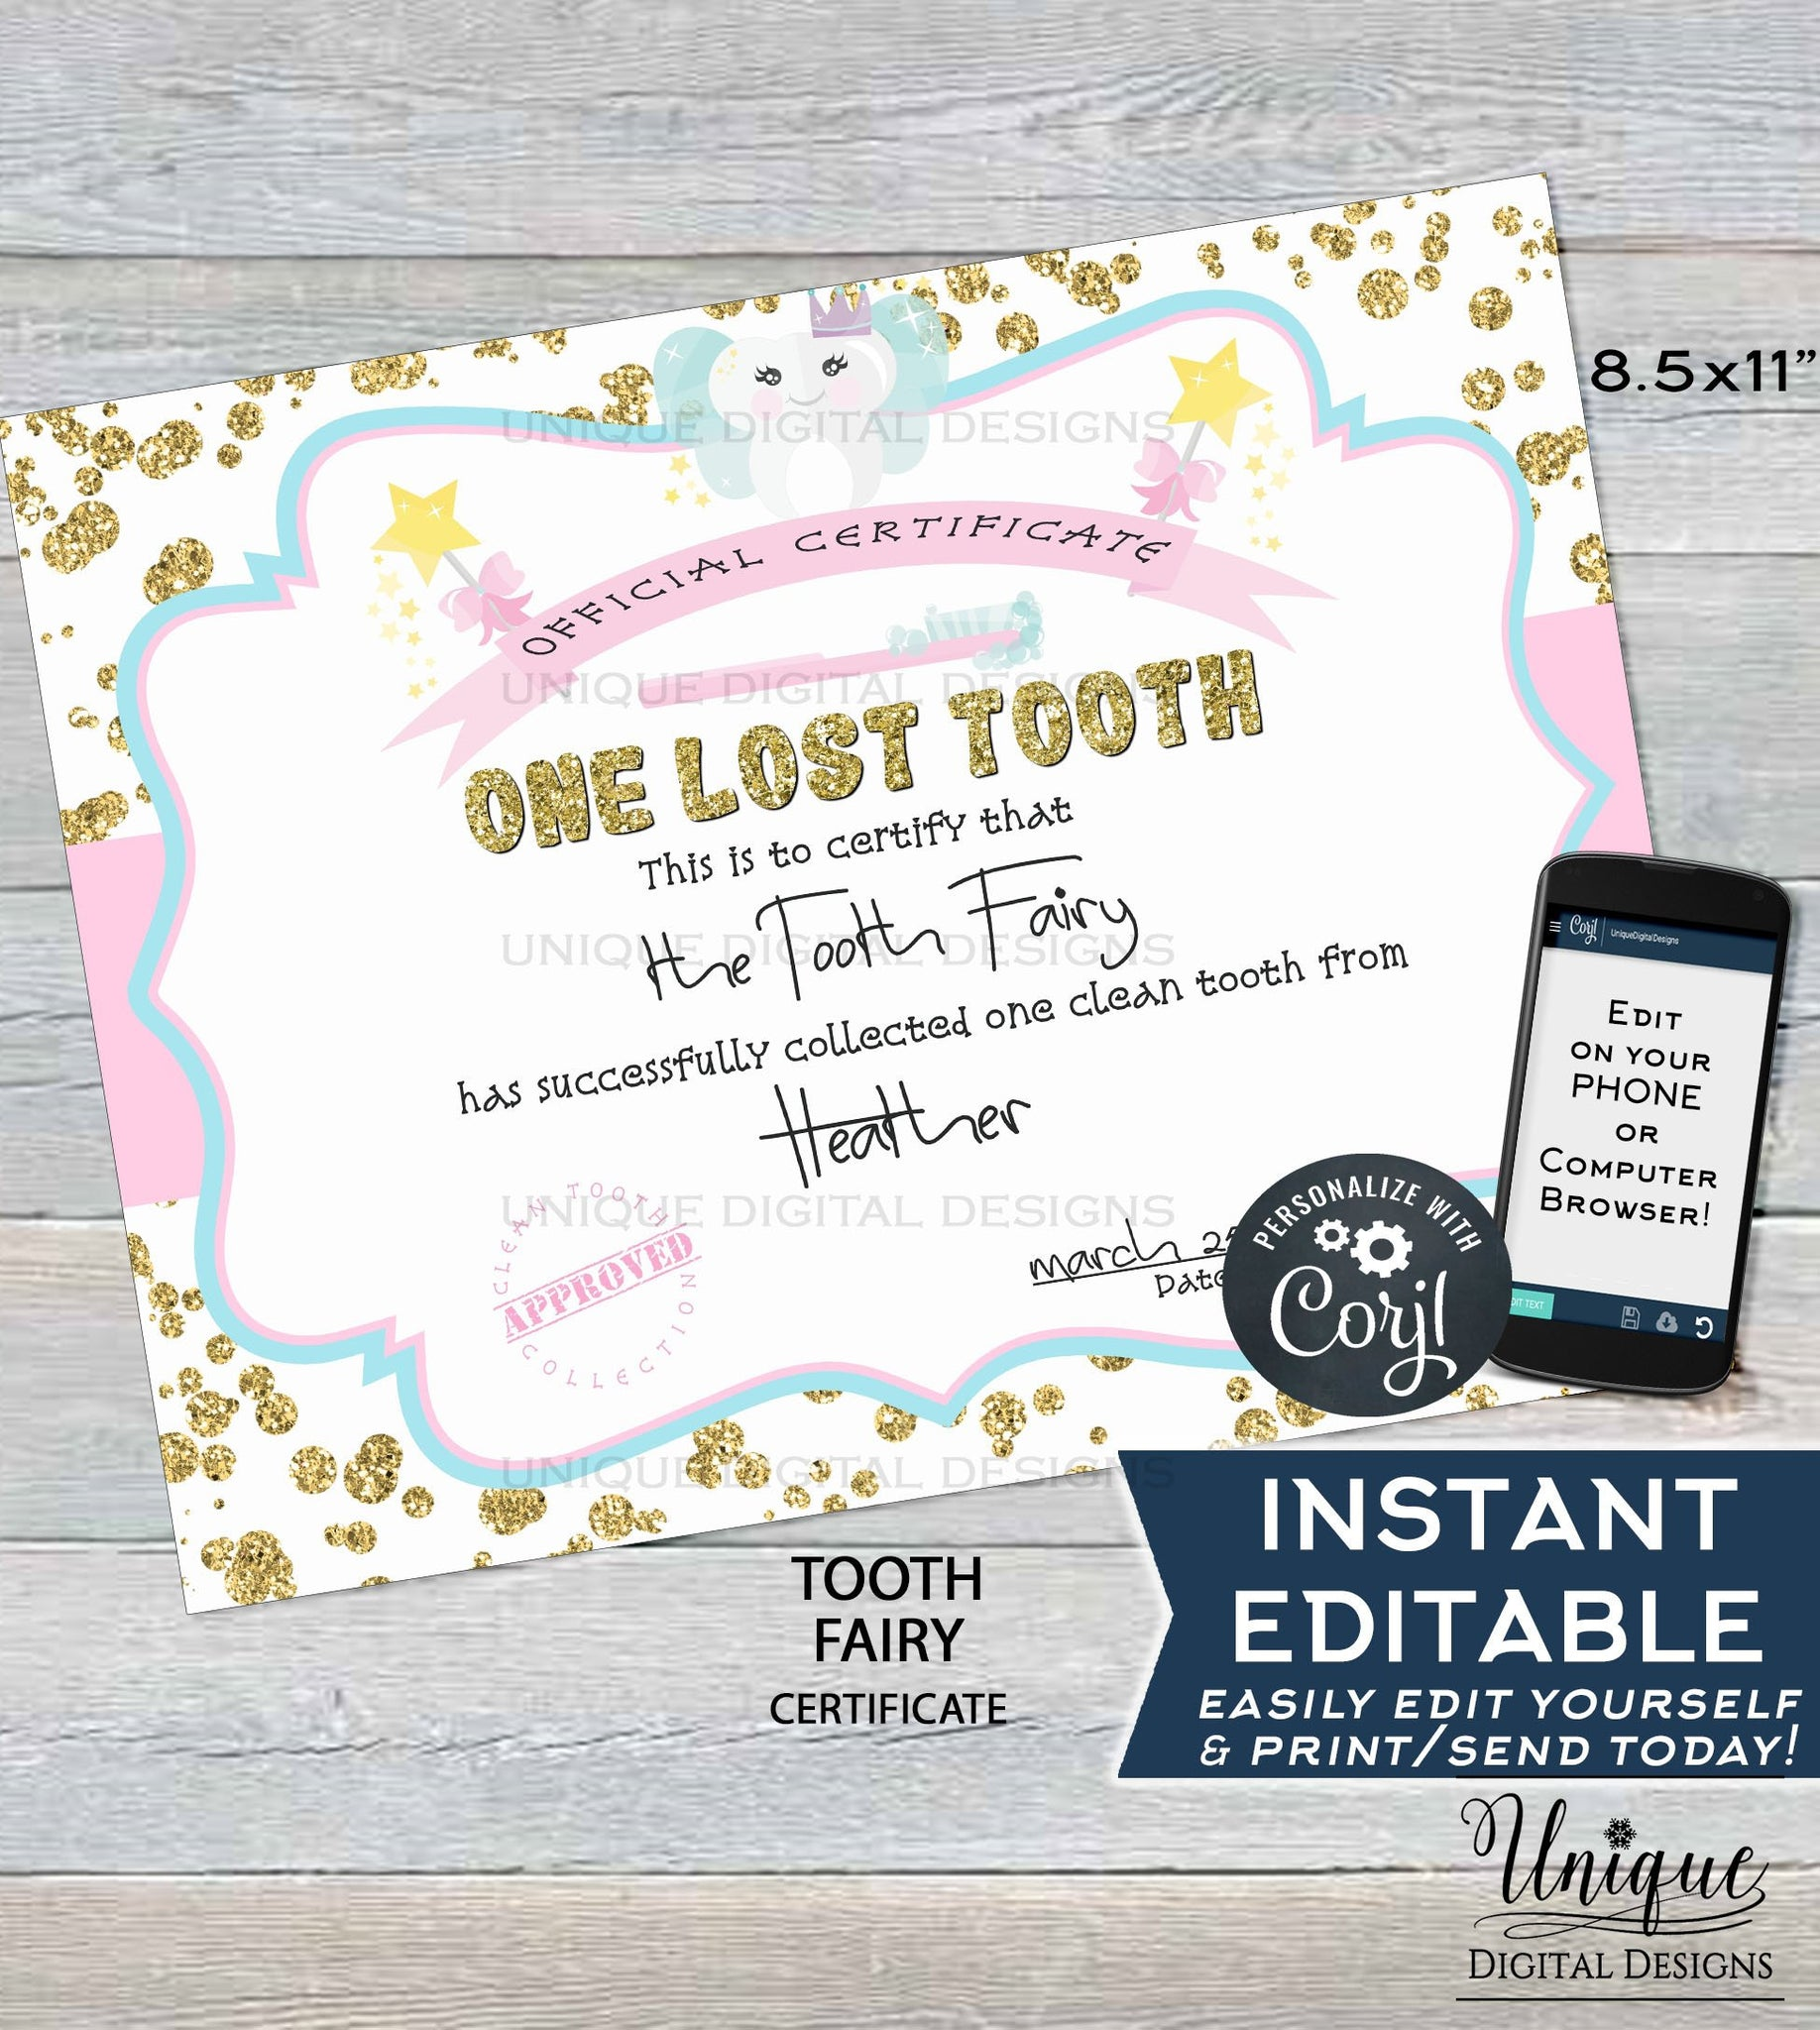 graphic relating to Tooth Fairy Card Printable titled Editable Teeth Fairy Letter, Misplaced Enamel Certification, Customized Teeth Fairy Receipt Fresh Tooth Competent Customise Printable Prompt Obtain